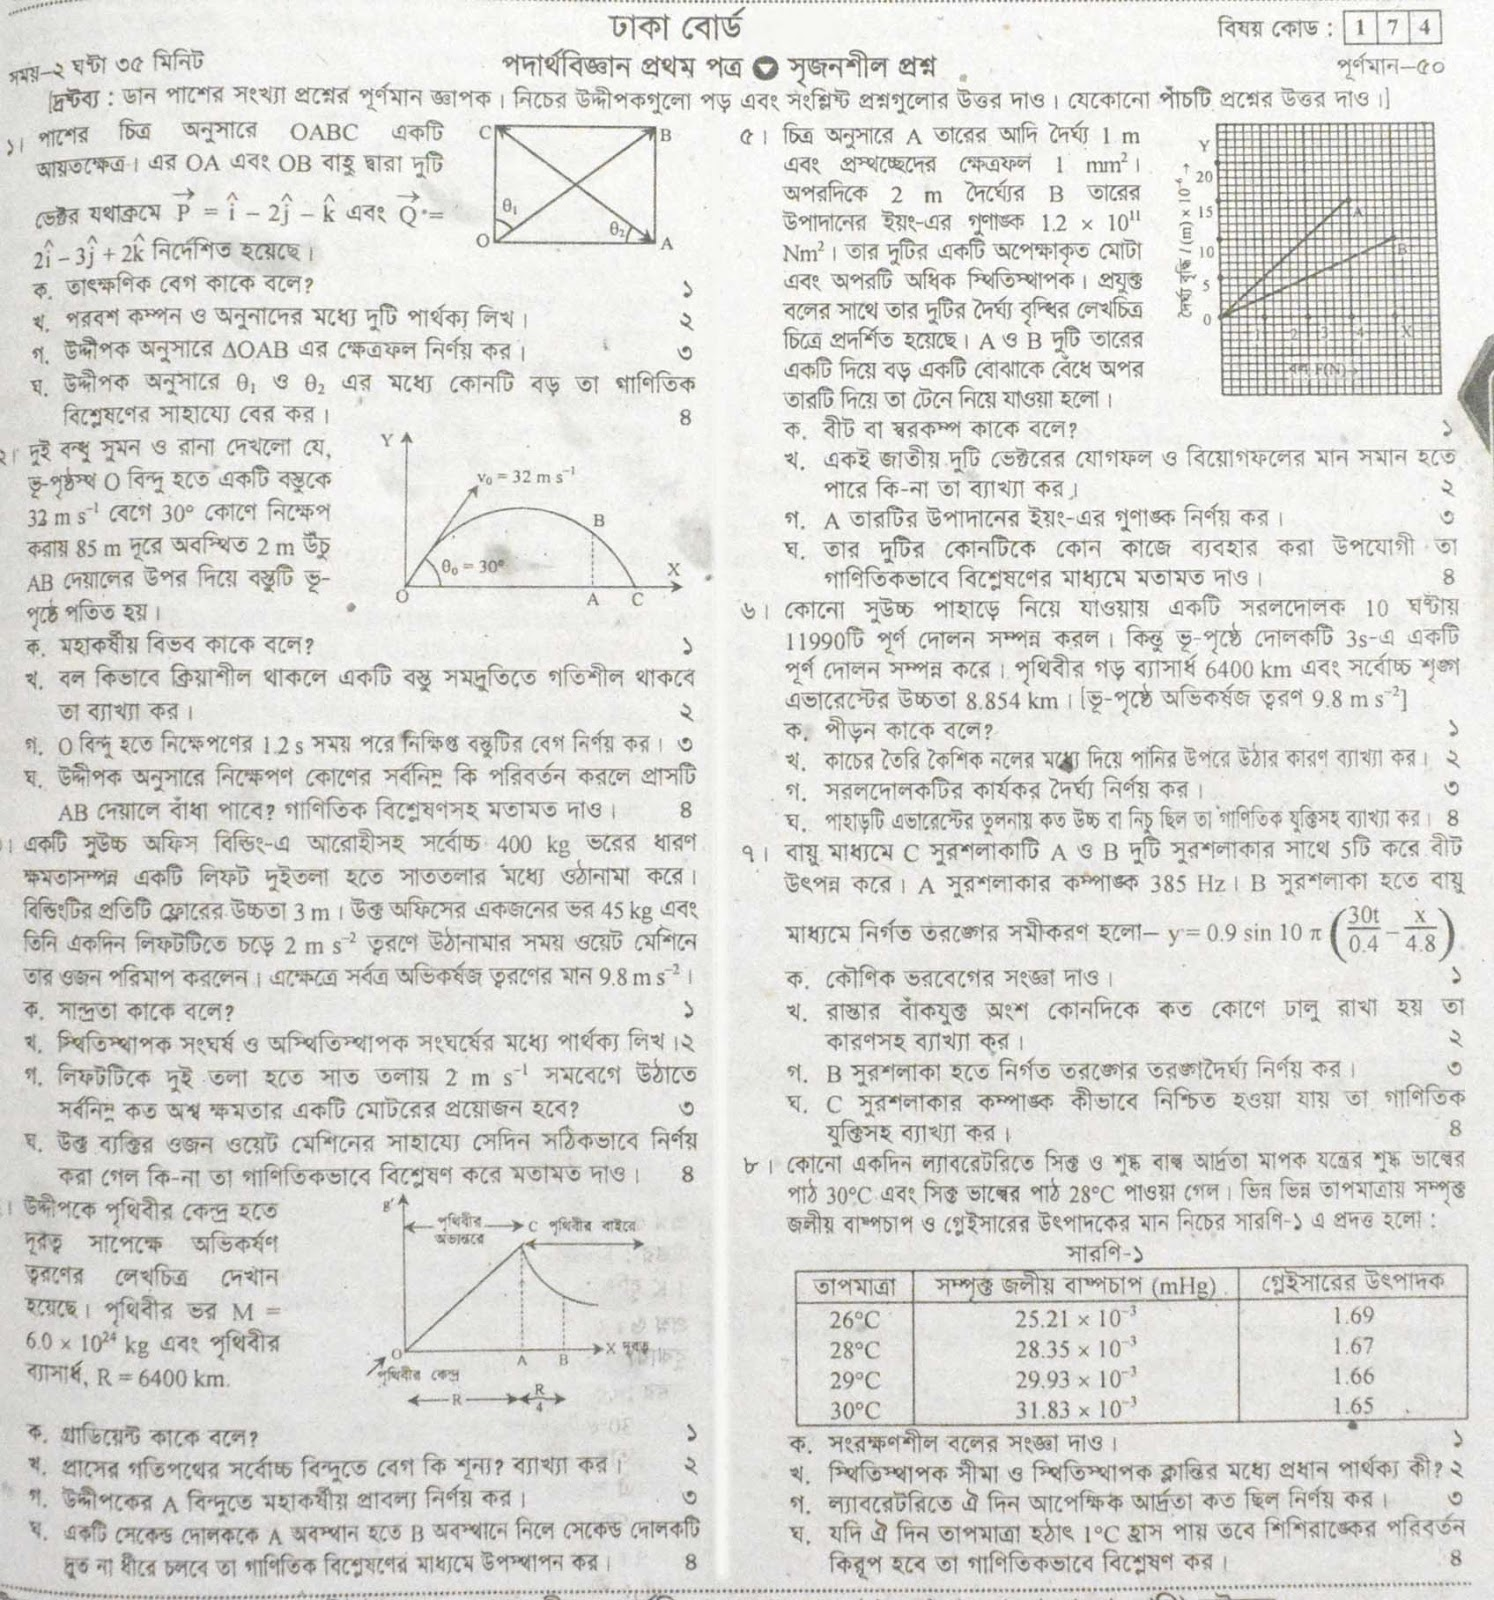 HSC Exam 2020: Physics 1st Paper Question & Suggestion (100